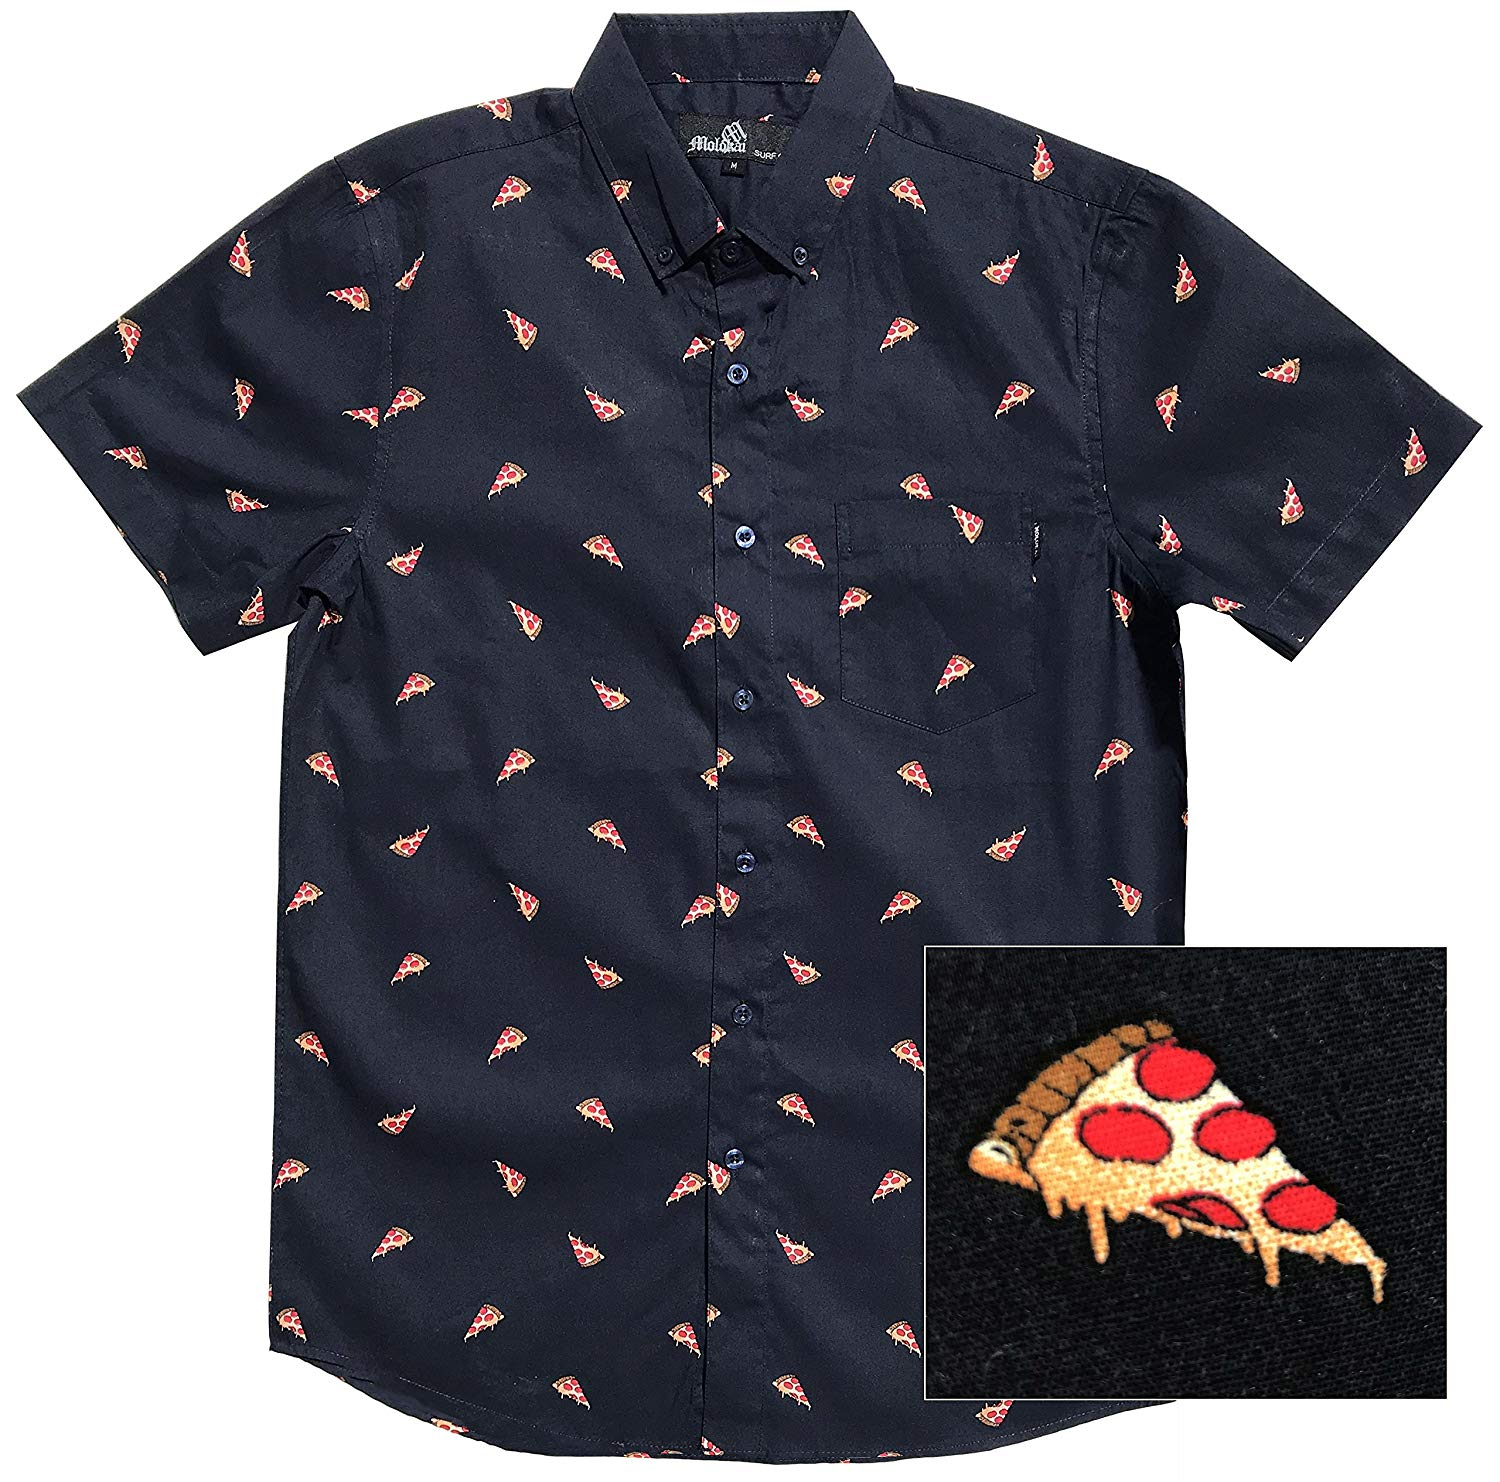 YUNY Mens Hipster Printed Casual Slim fit Short Sleeve Casual Polo Shirt Black M